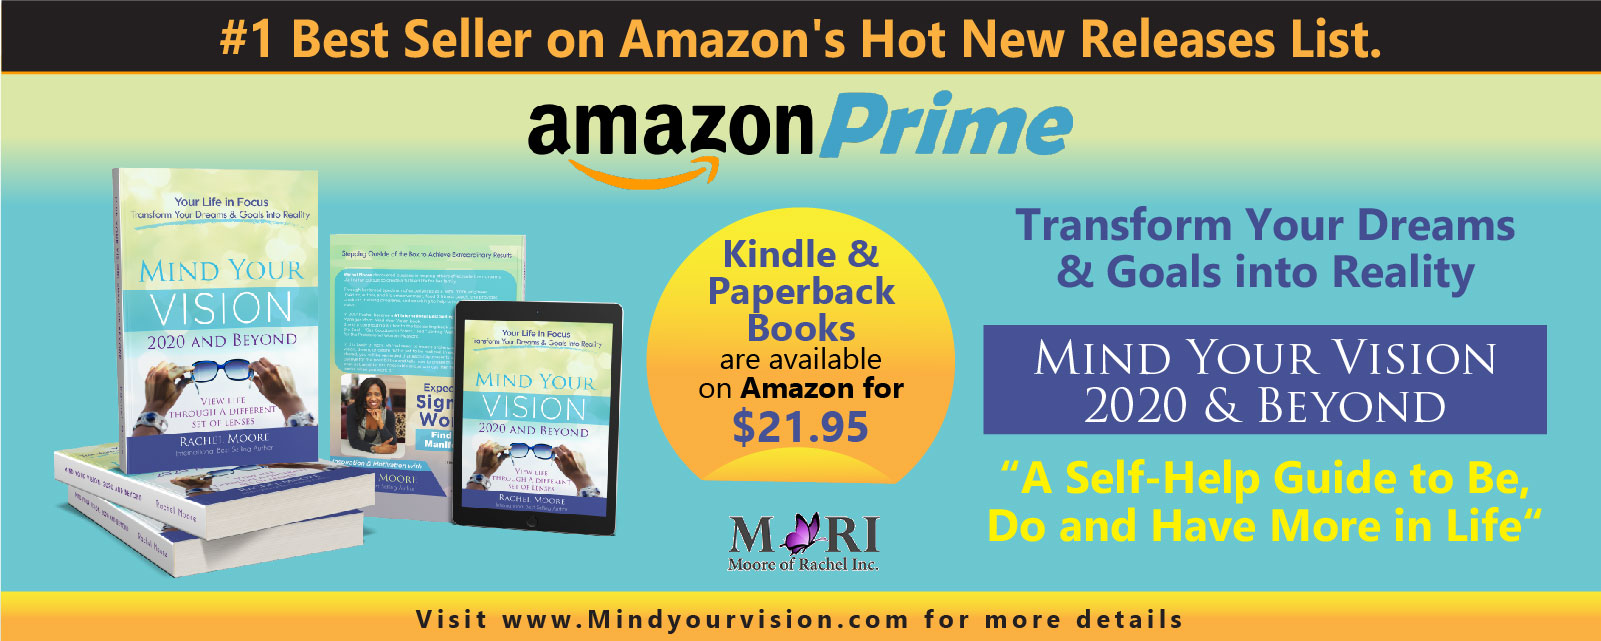 Amazon Hot New Release - Mind Your Vision - 2020 and Beyond